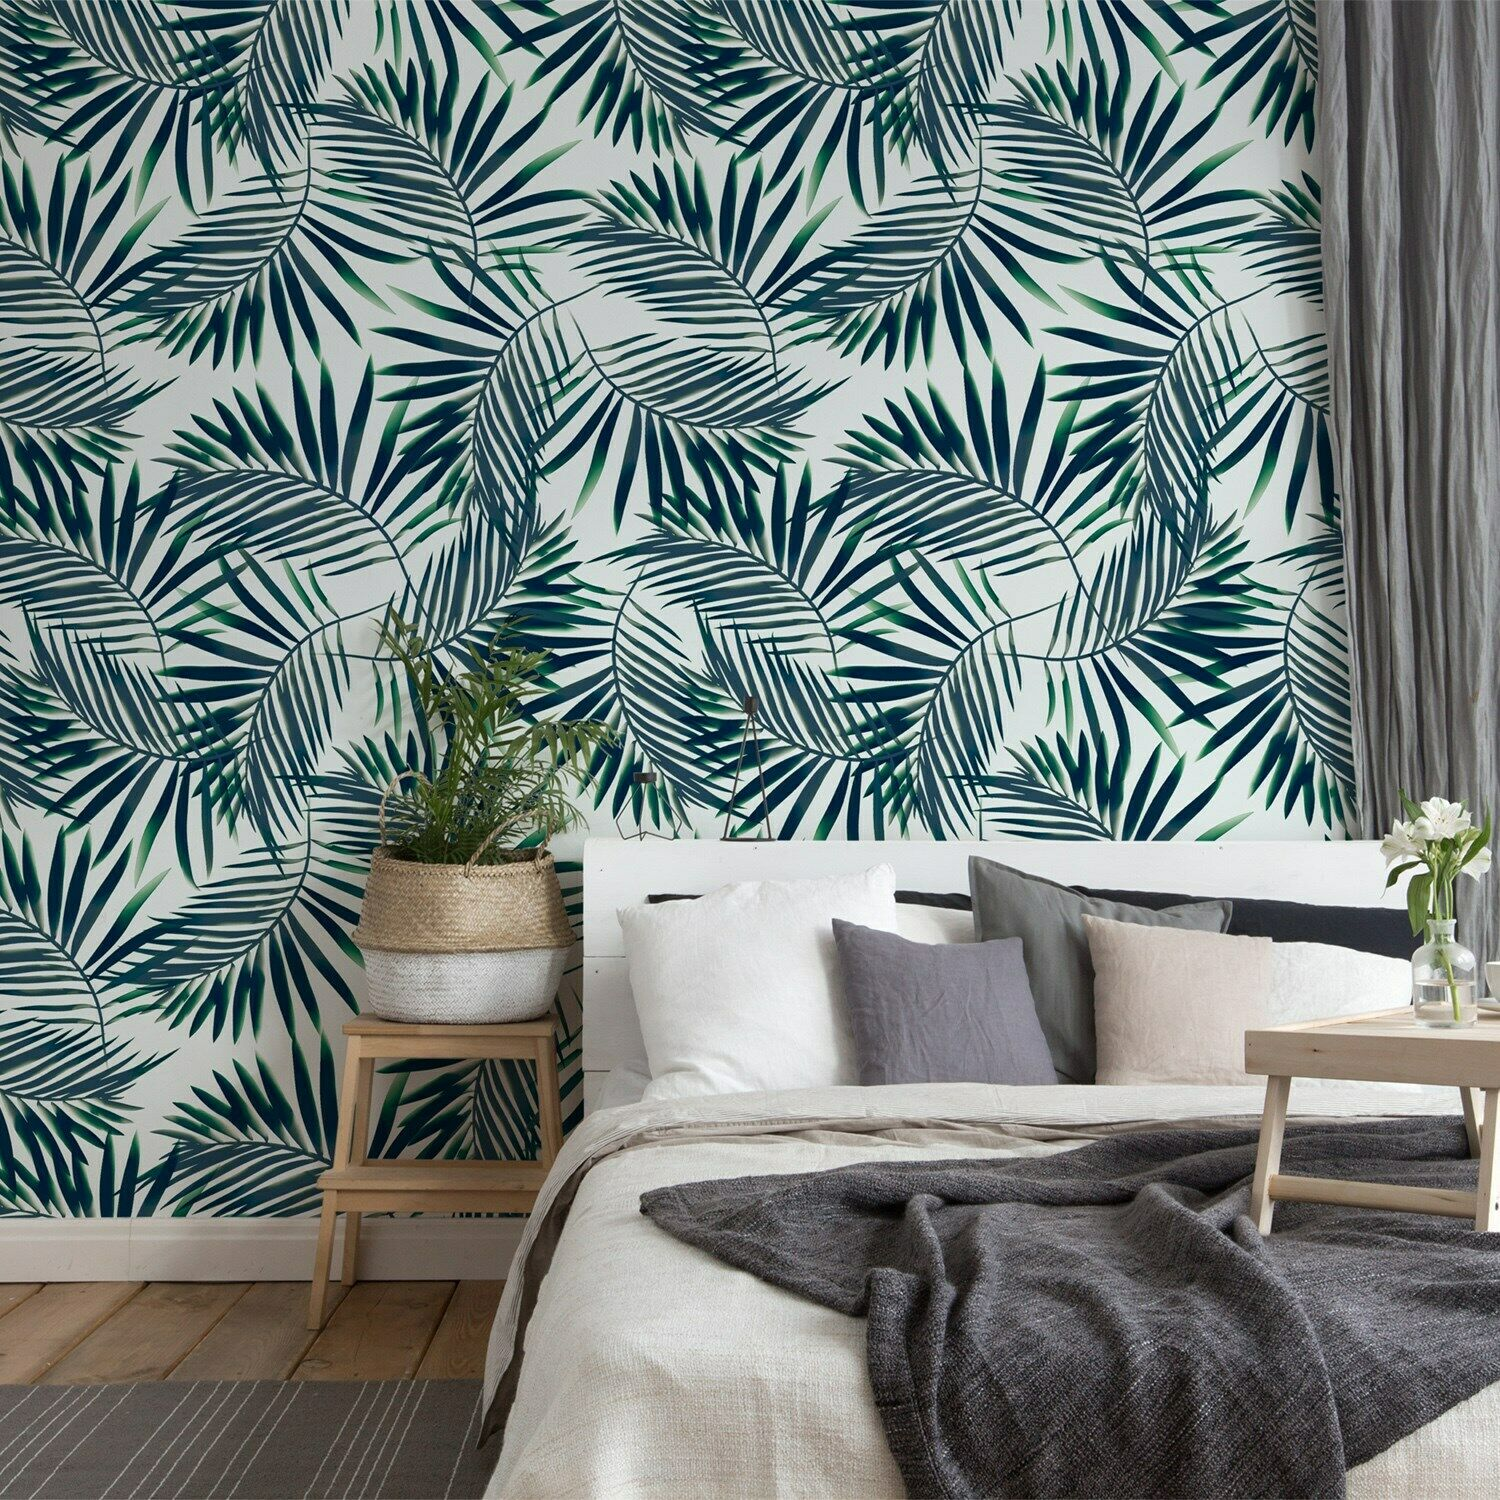 Minty Dark Tropic Leaves Non-Woven wallpaper Traditional Roll Home Mural Decor